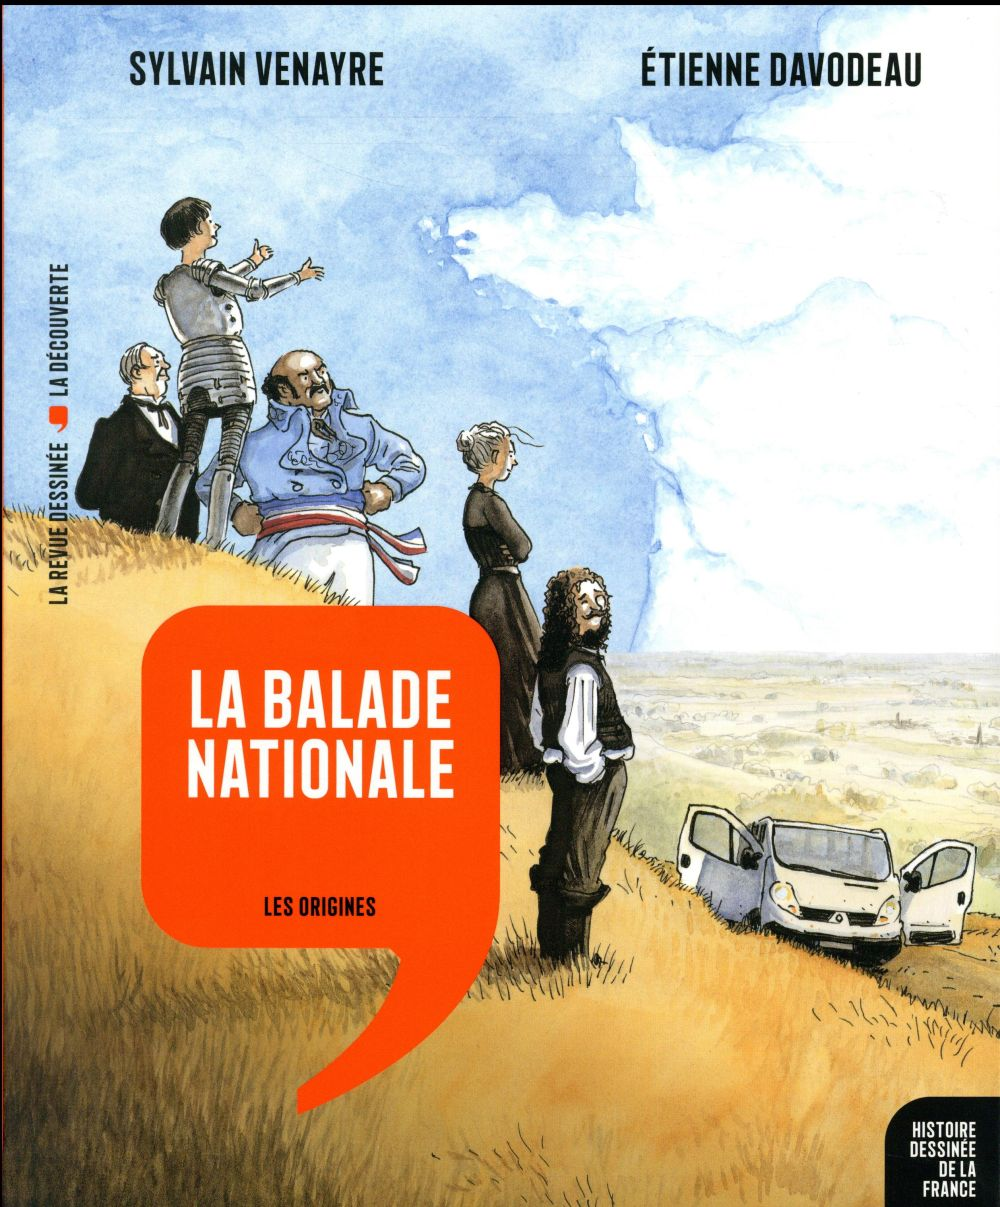 HISTOIRE DESSINEE DE LA FRANCE T.1  -  LA BALADE NATIONALE  -  LES ORIGINES